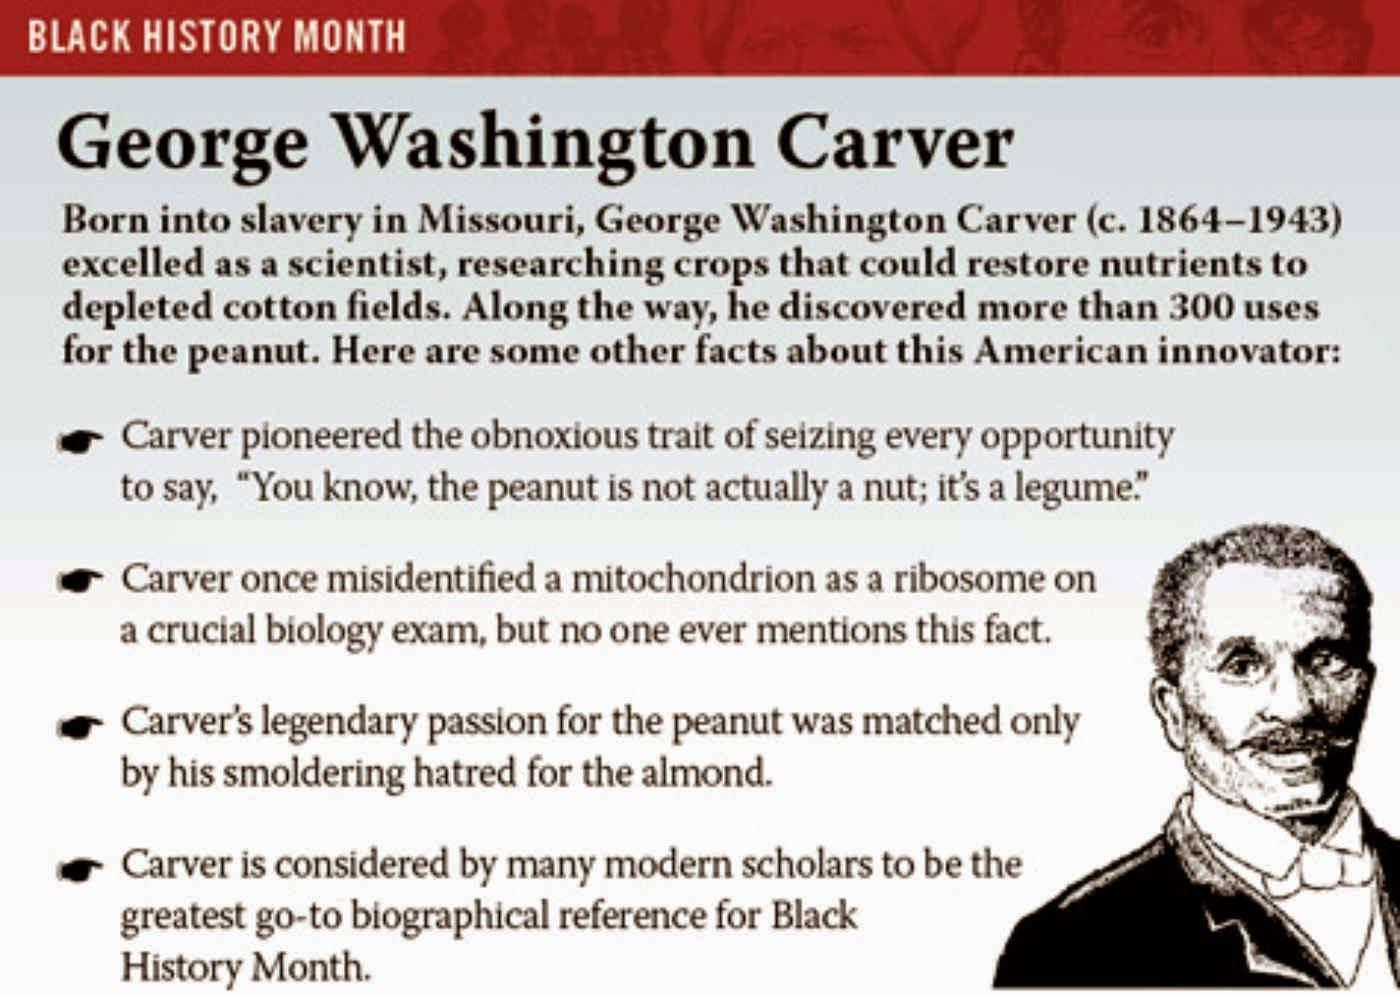 a biography of george washington carver born a slave in diamond grove missouri George washington carver was born into slavery in diamond, missouri, around 1864 the exact year and date of his birth are unknown carver went on to become one of the most prominent scientists.